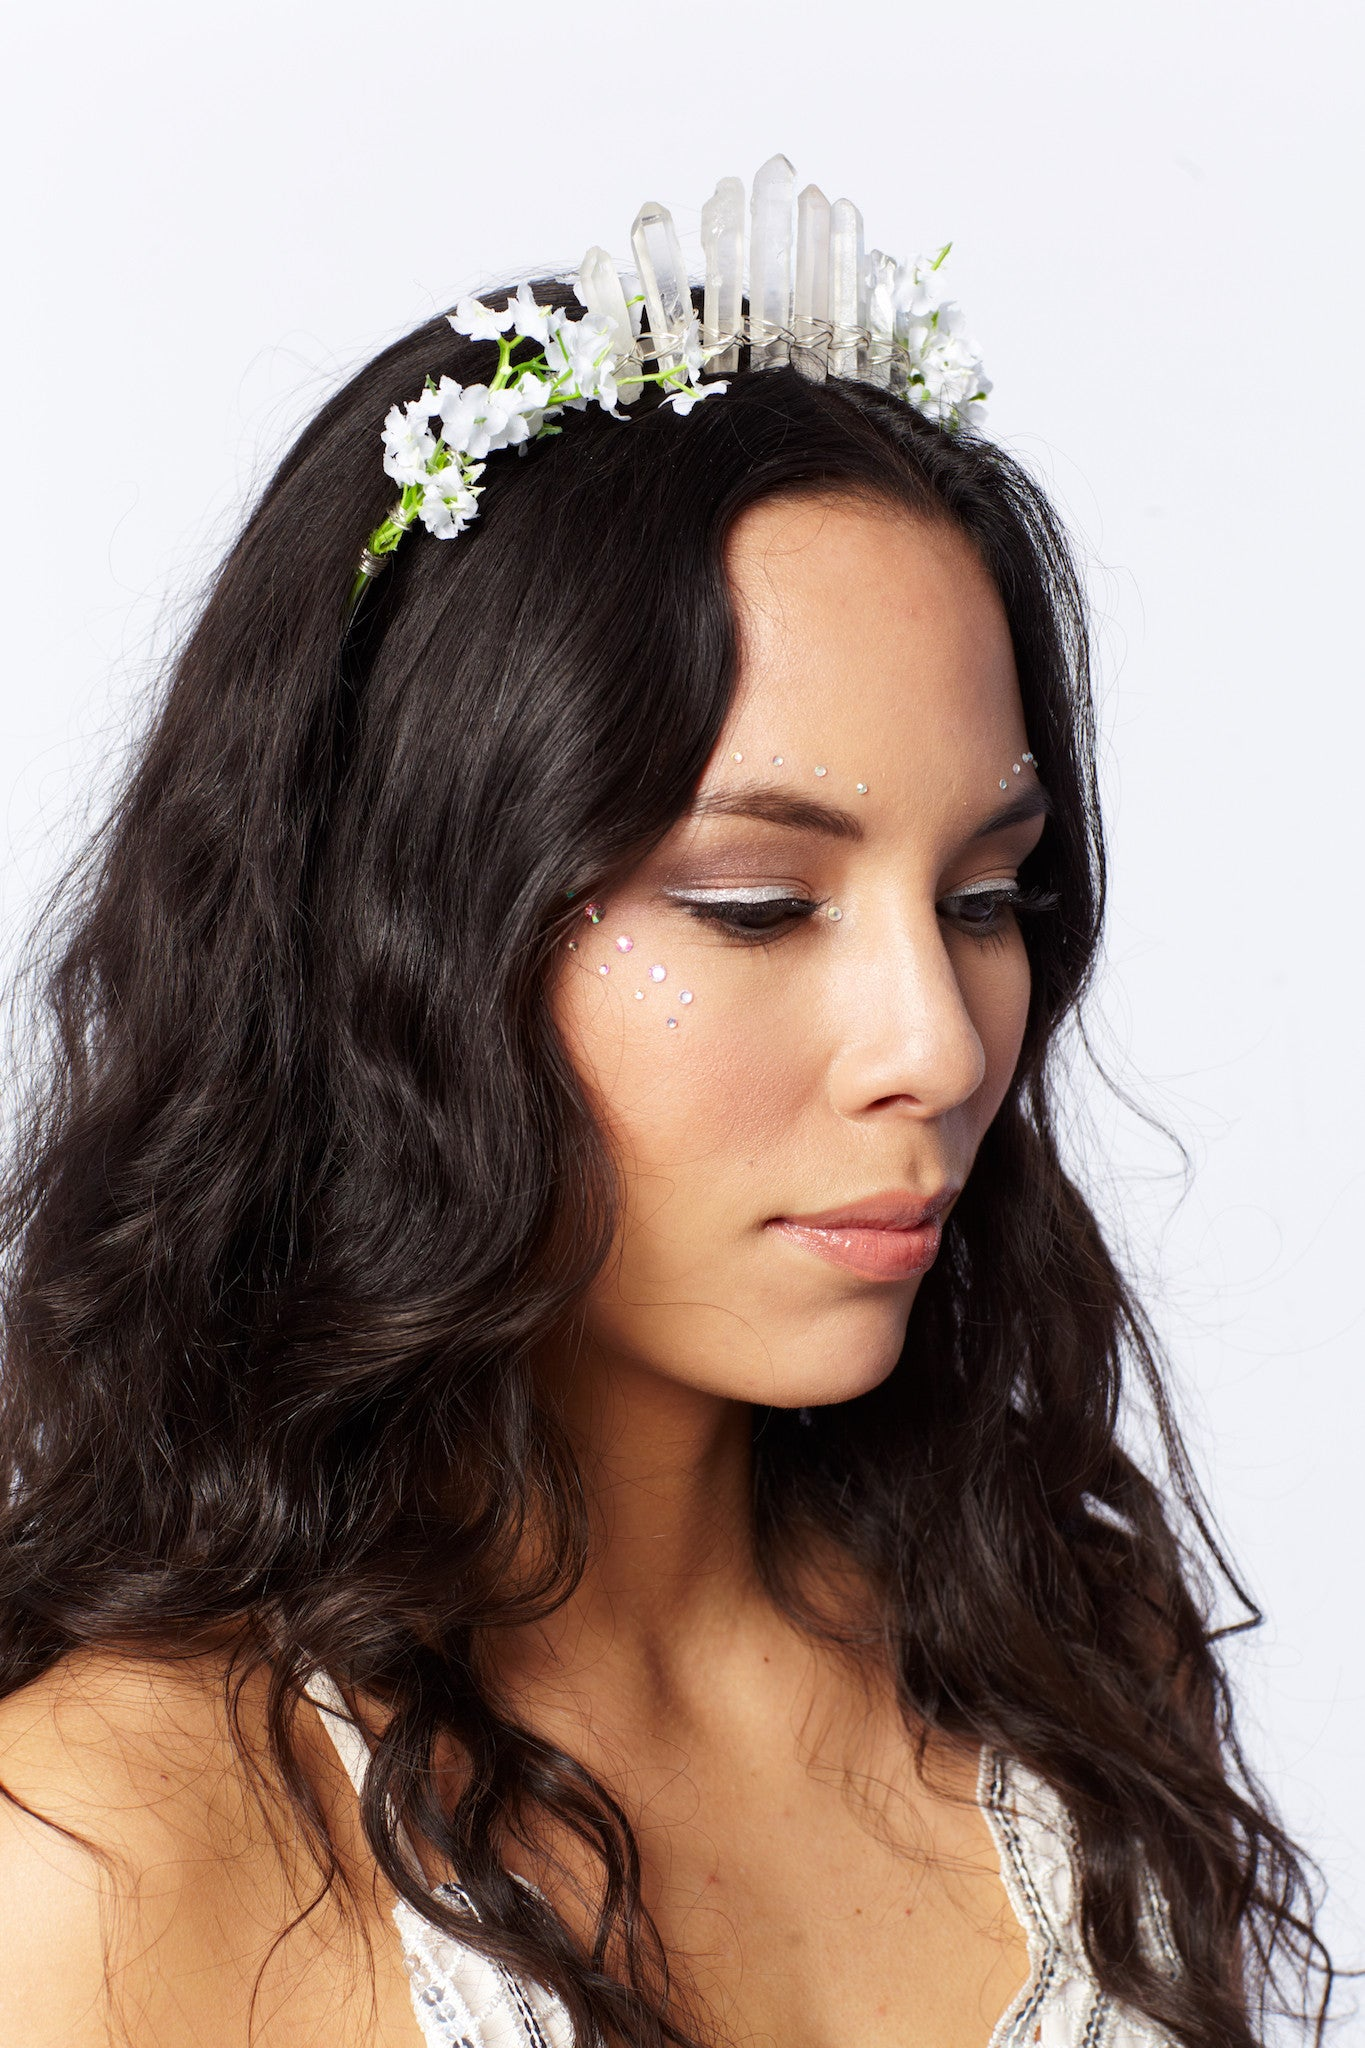 Siren Mystic Flower Crown